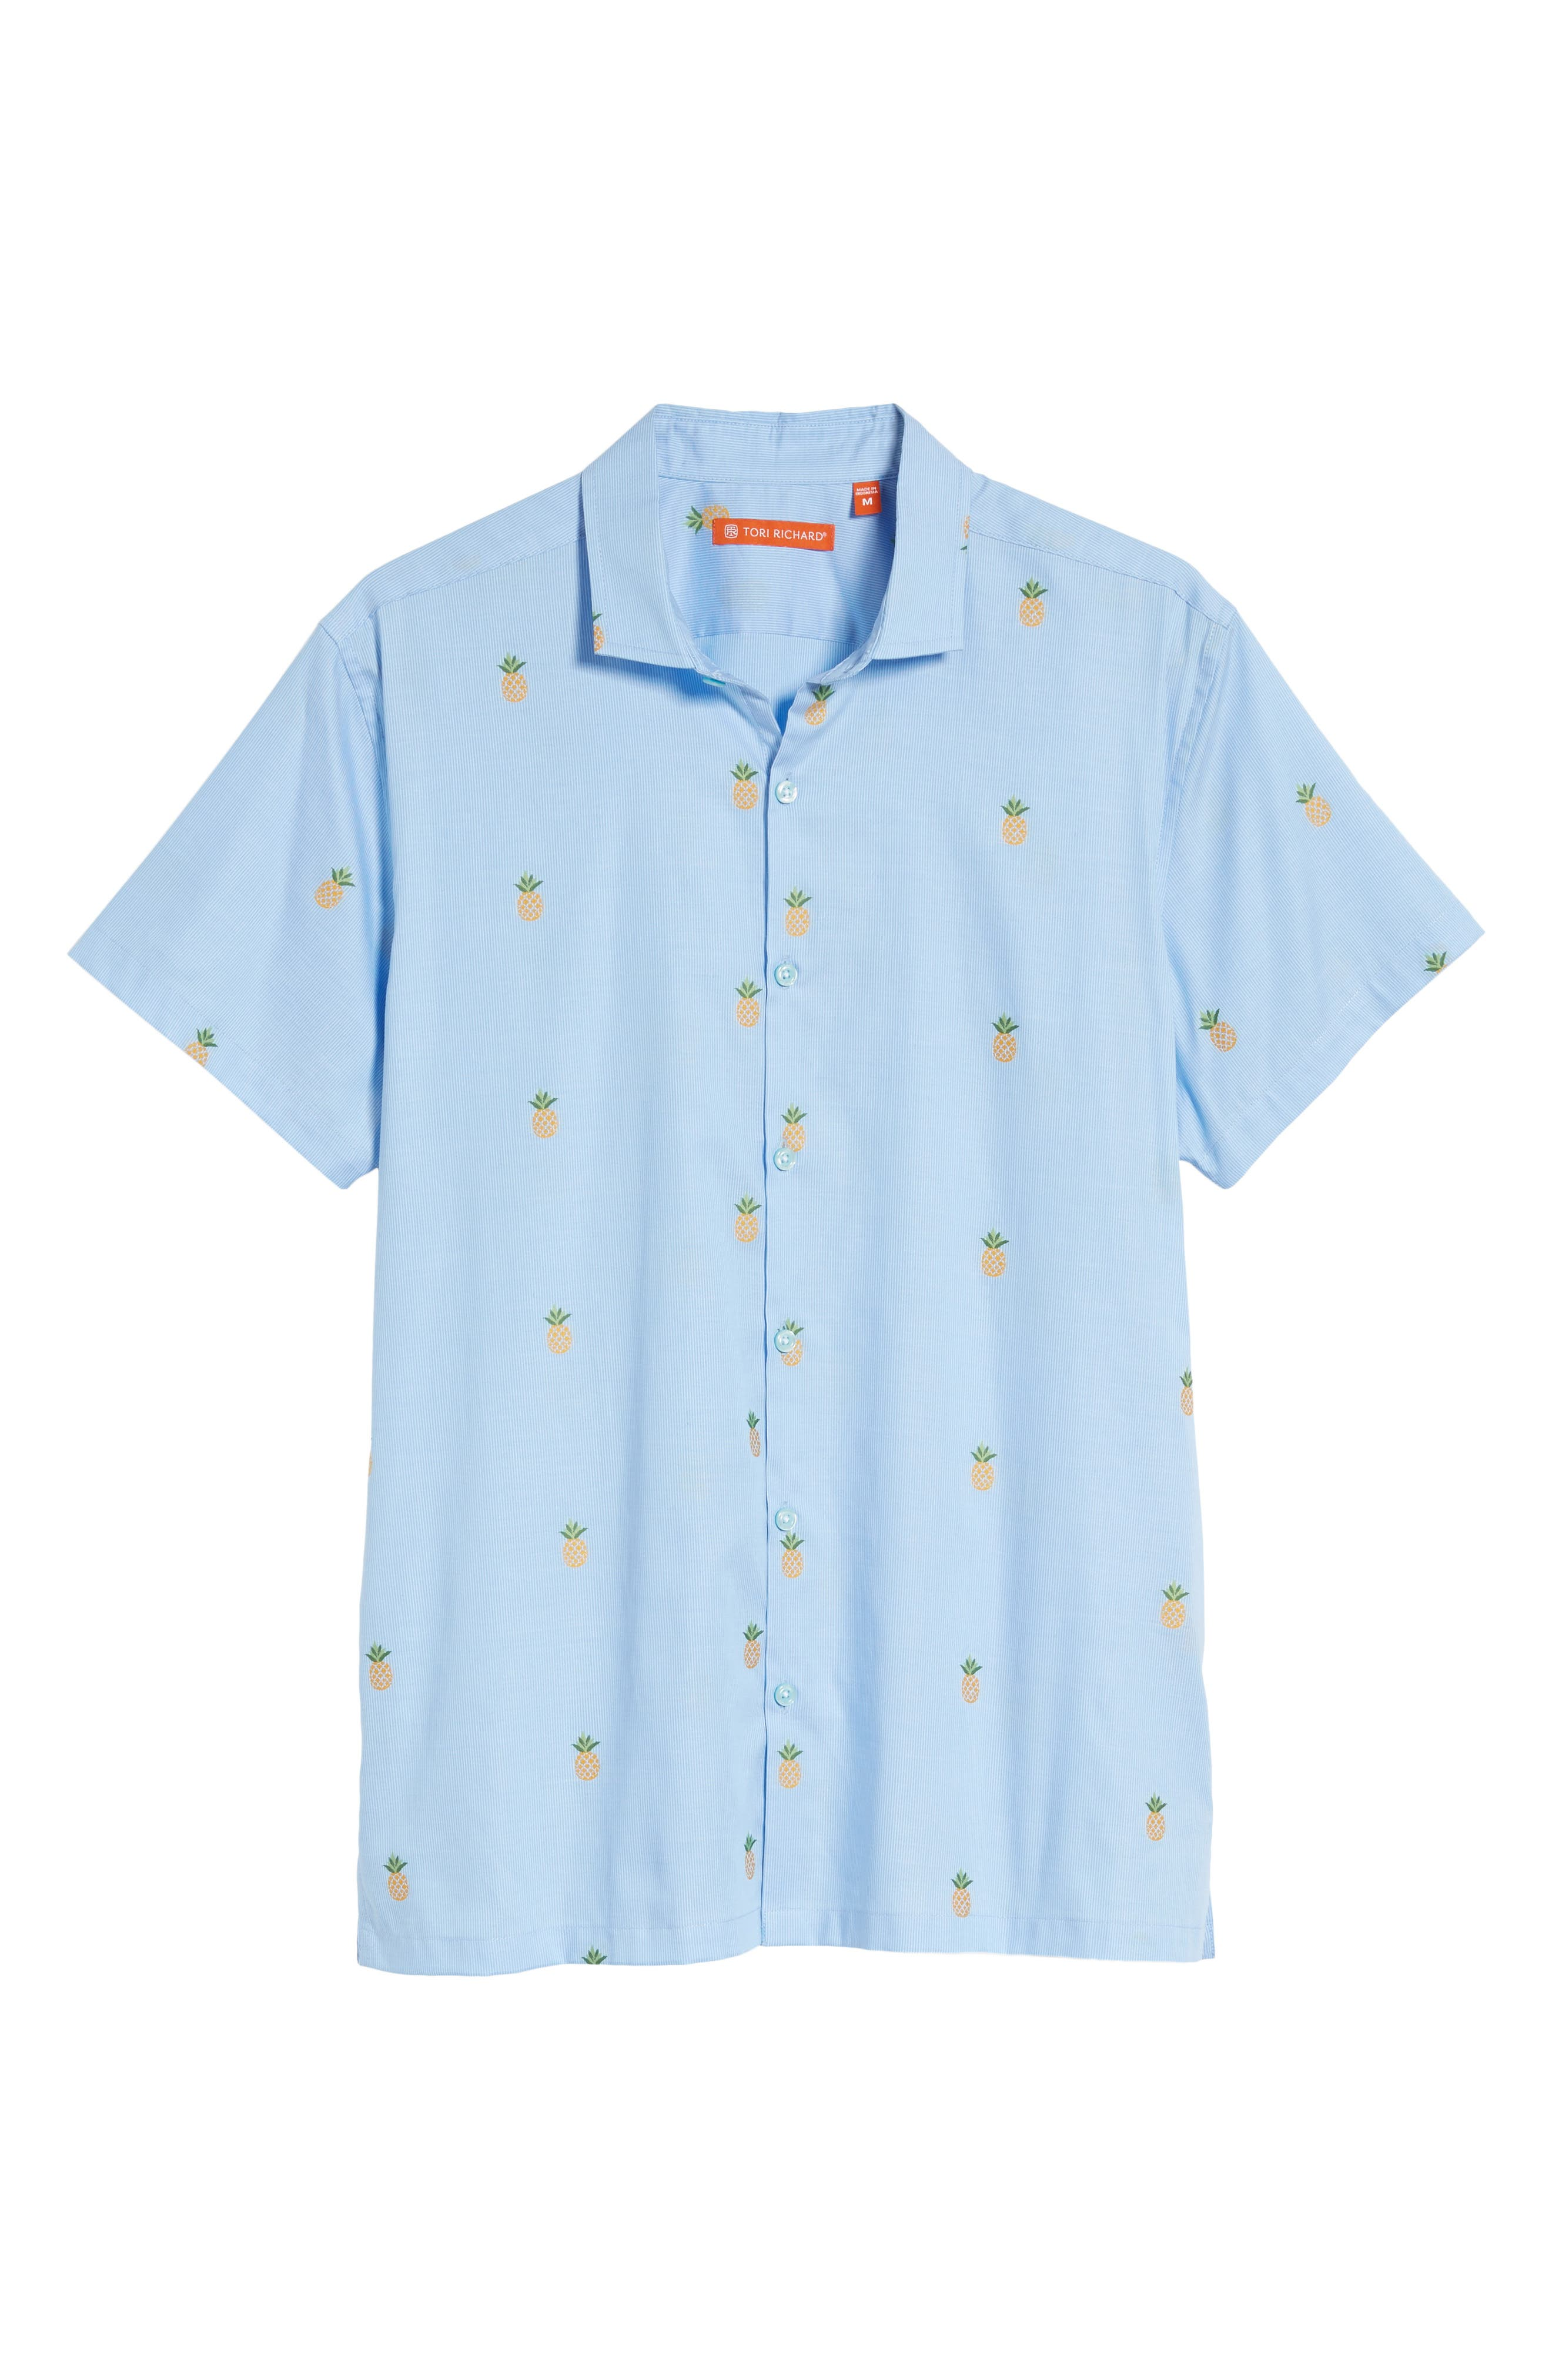 Dole 'N' Row Trim Fit Embroidered Sport Shirt,                             Alternate thumbnail 6, color,                             409